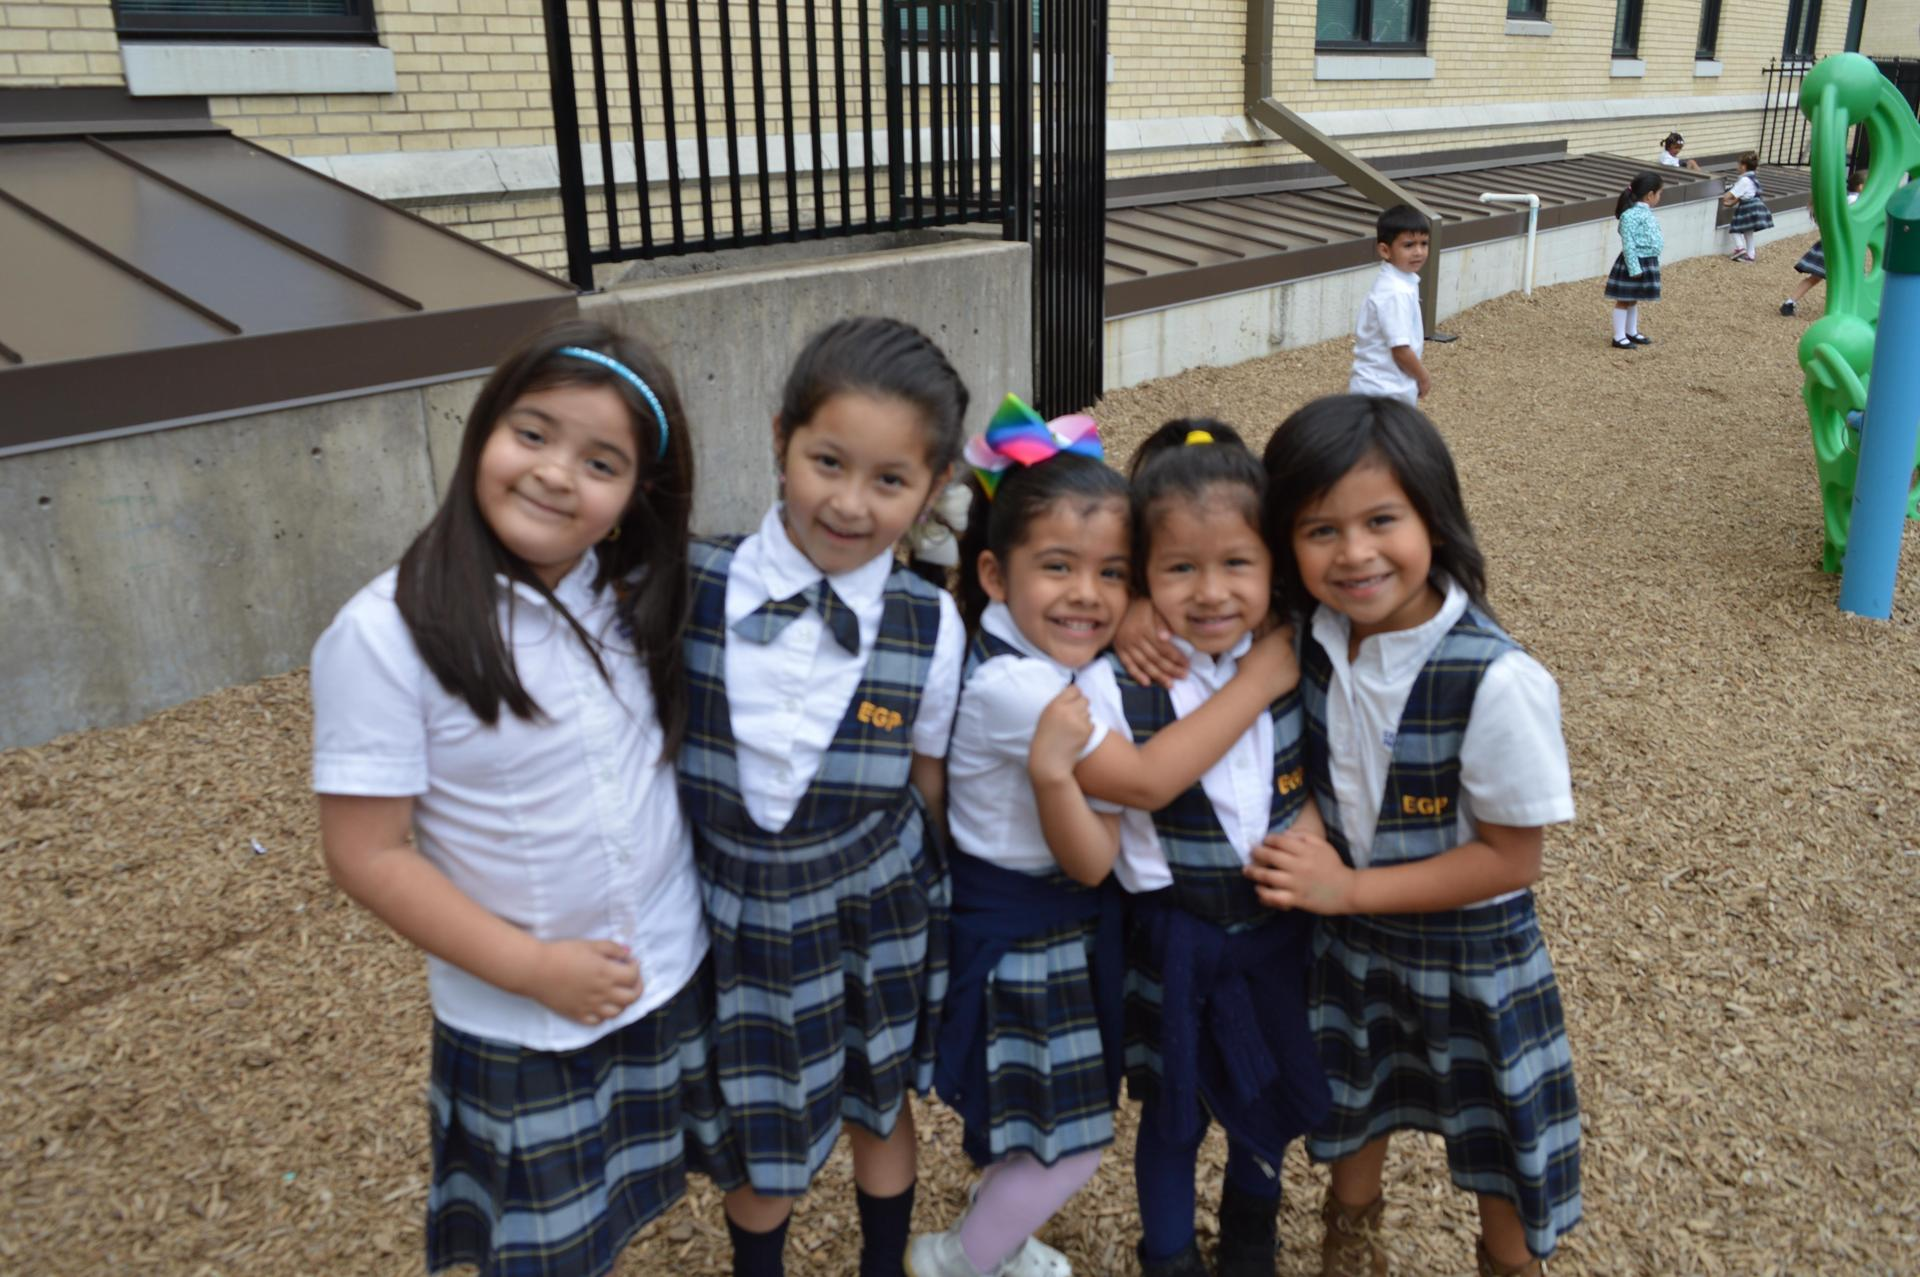 PreK friendships